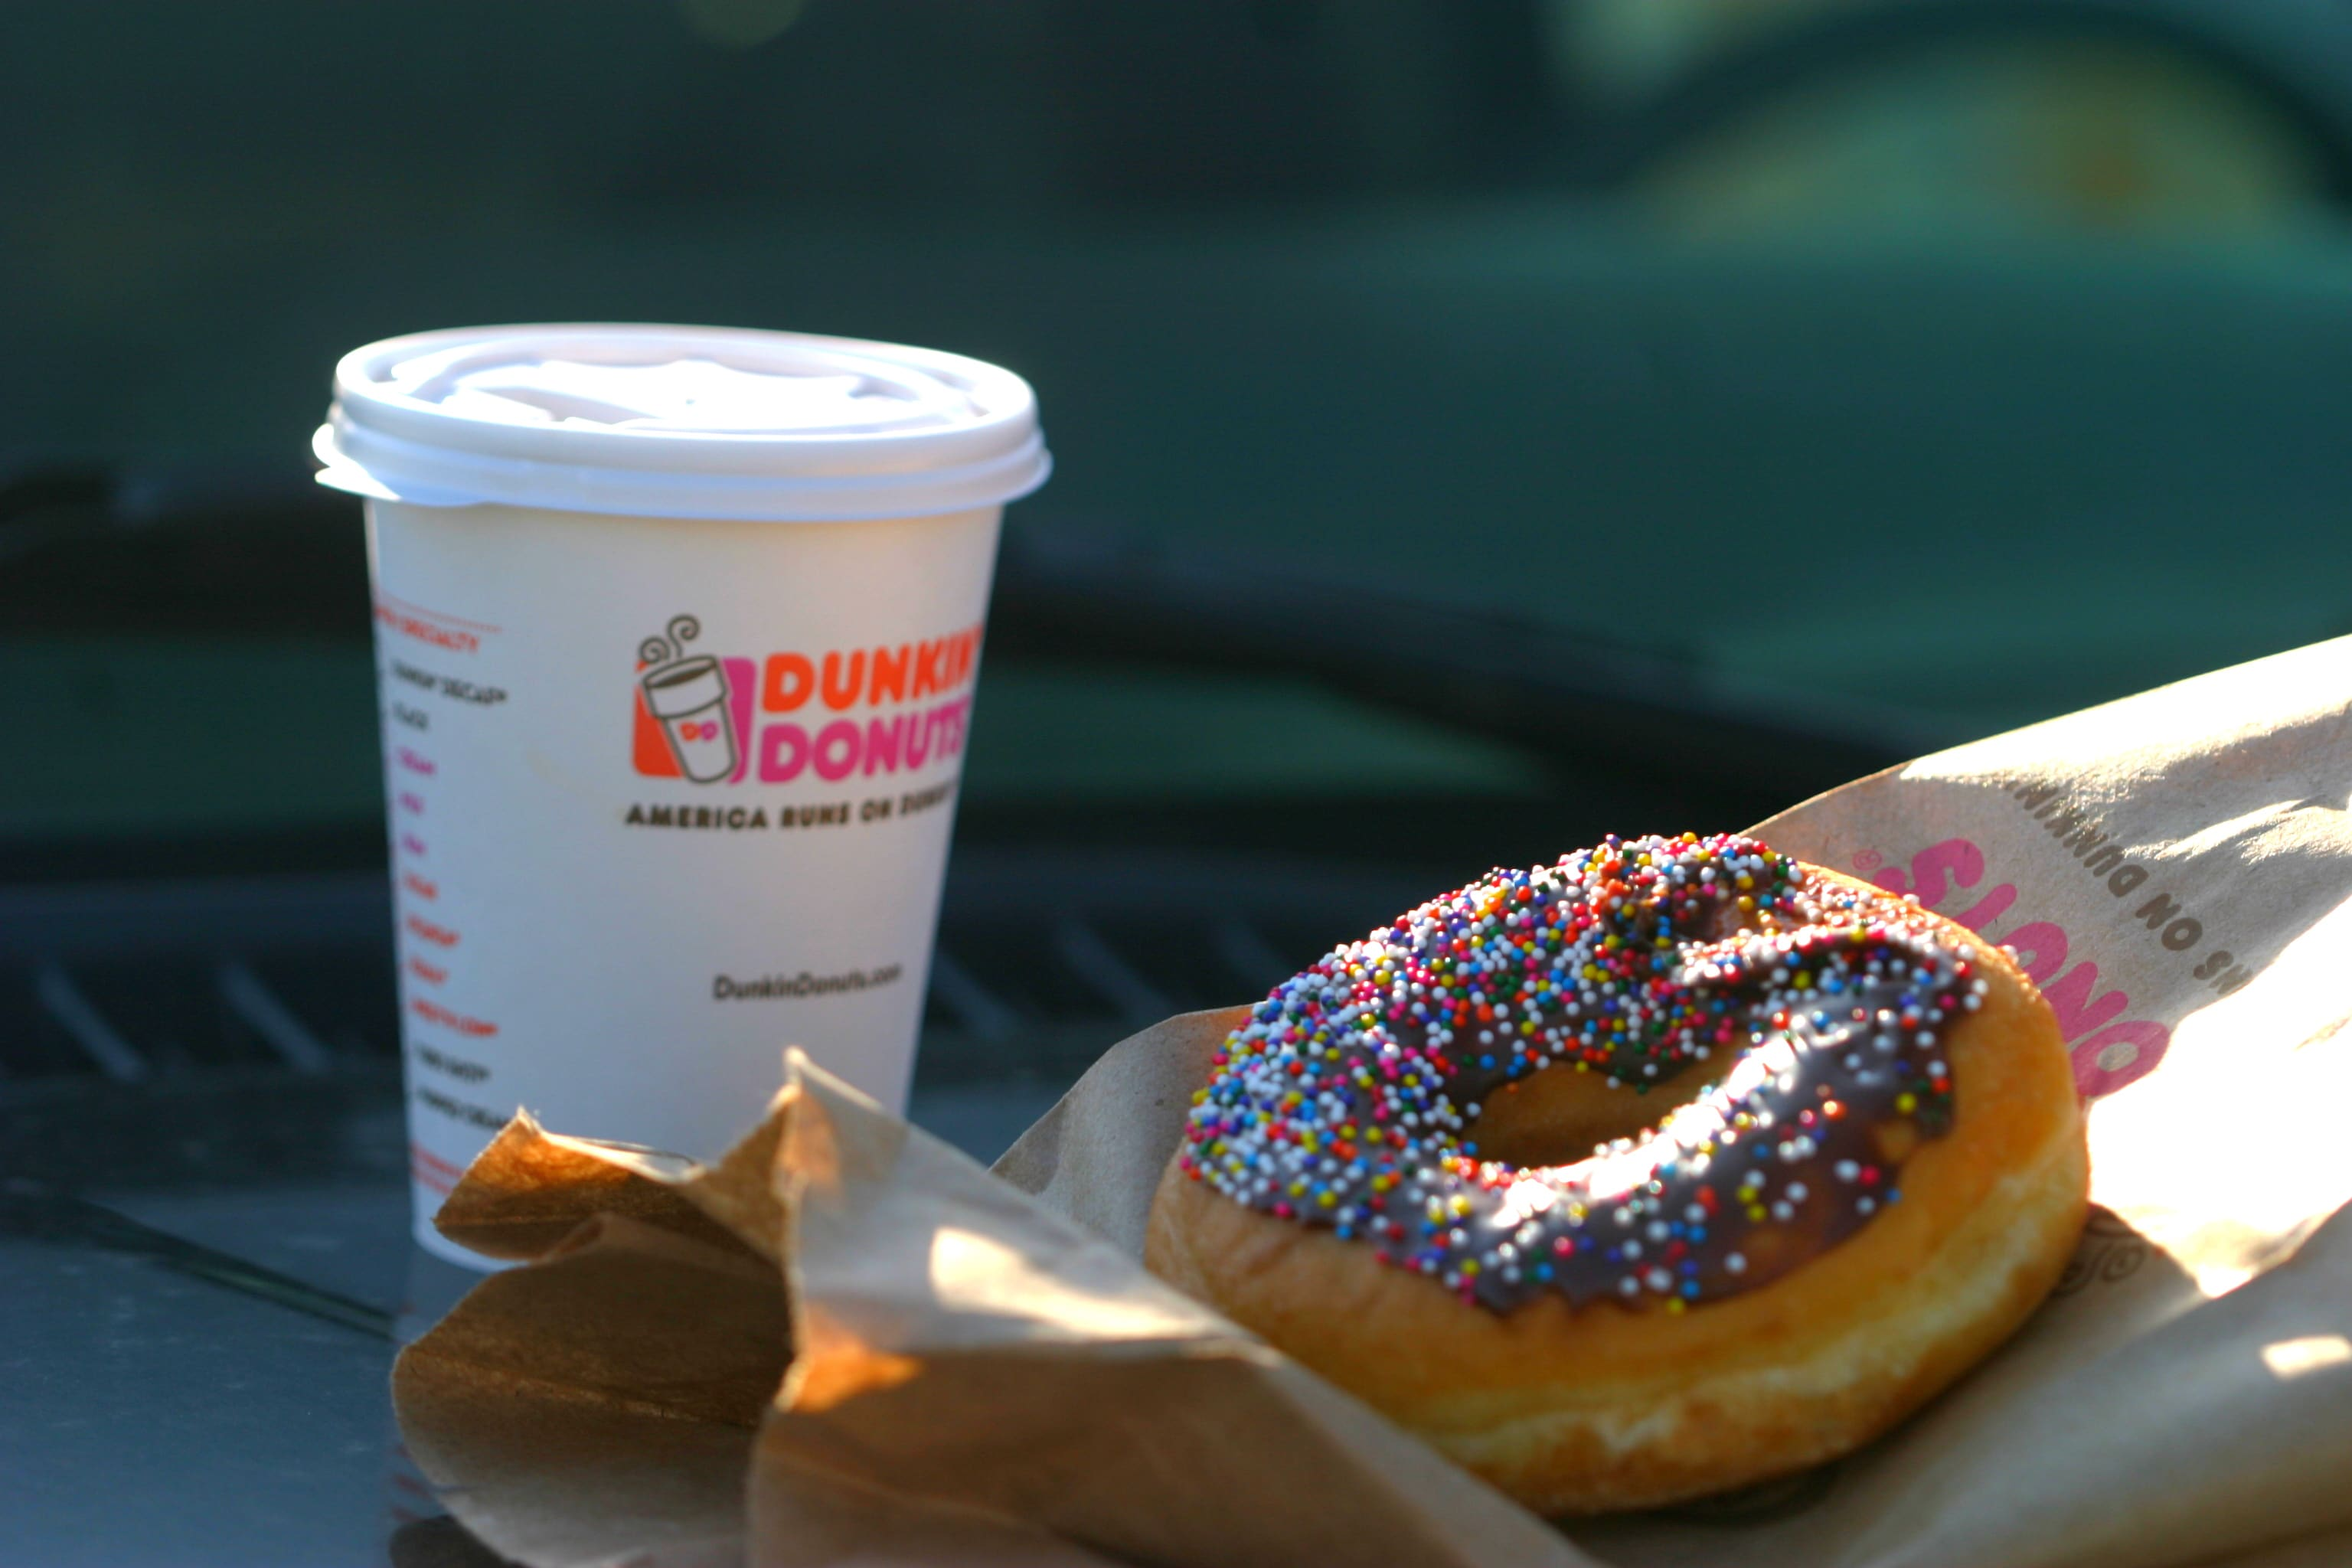 2f91ec59248 Here's Dunkin' Donuts' plan to get you to buy more coffee and doughnuts in  the afternoon